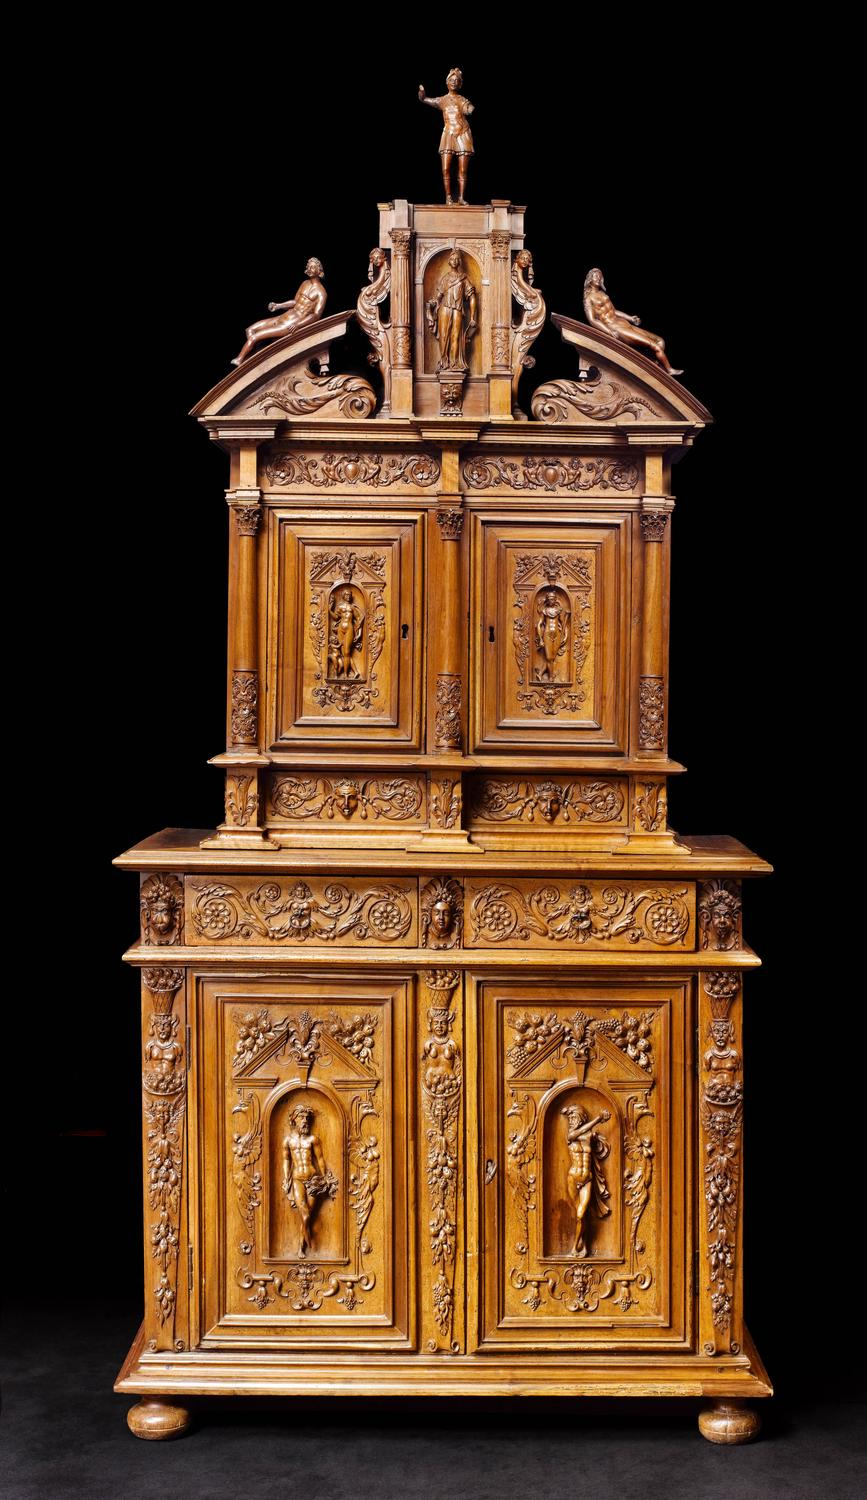 French Cabinet Renaissance Period 16th Century For Sale At